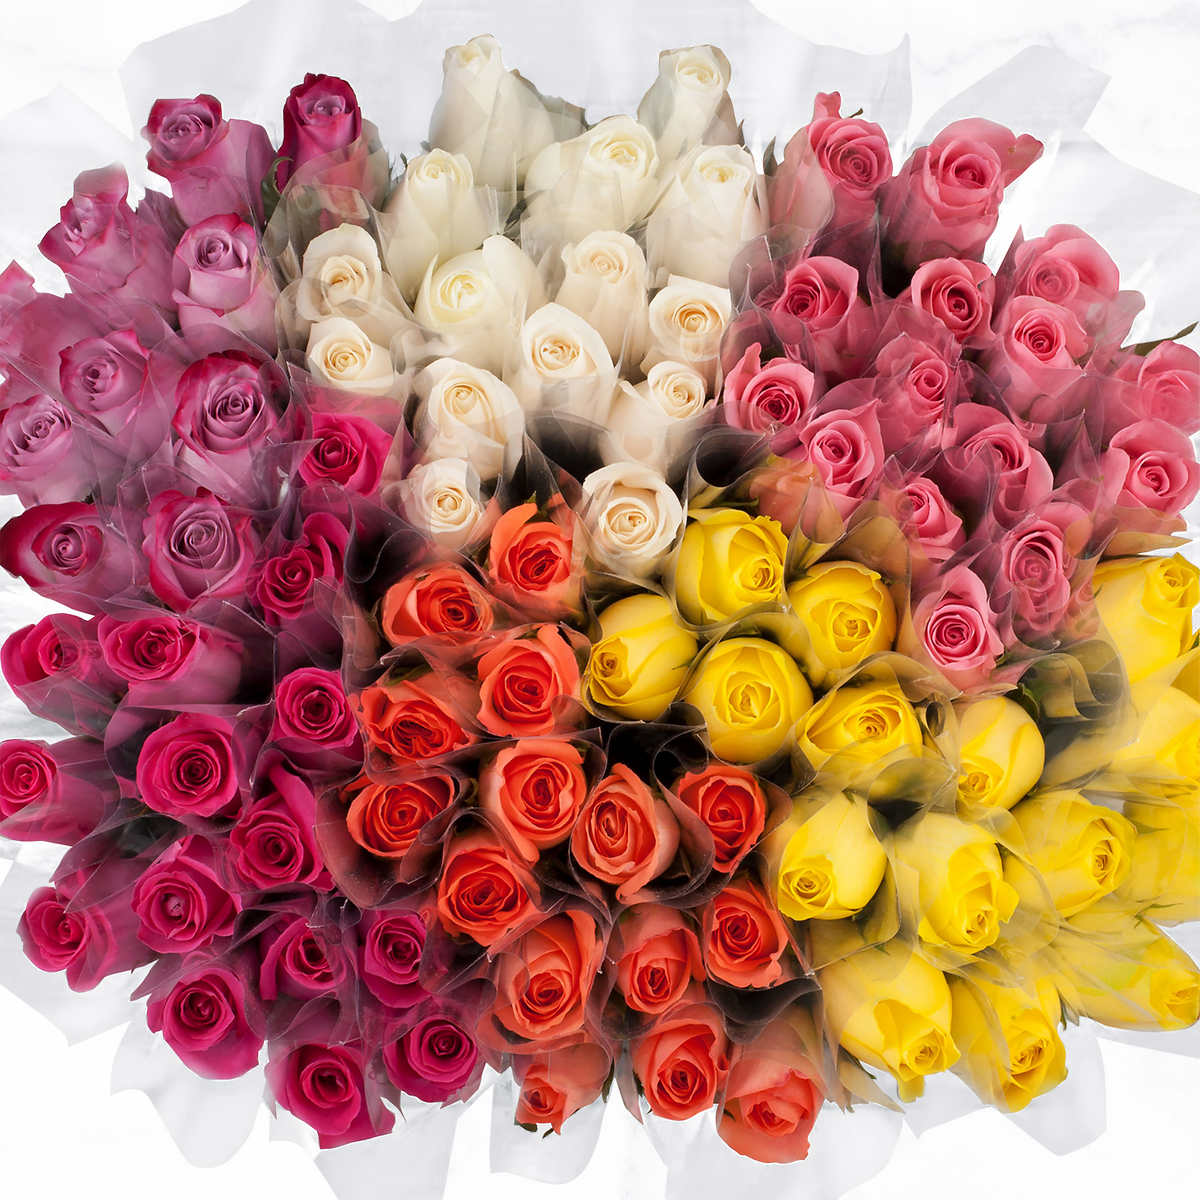 Online Whole Flowers Canada From China